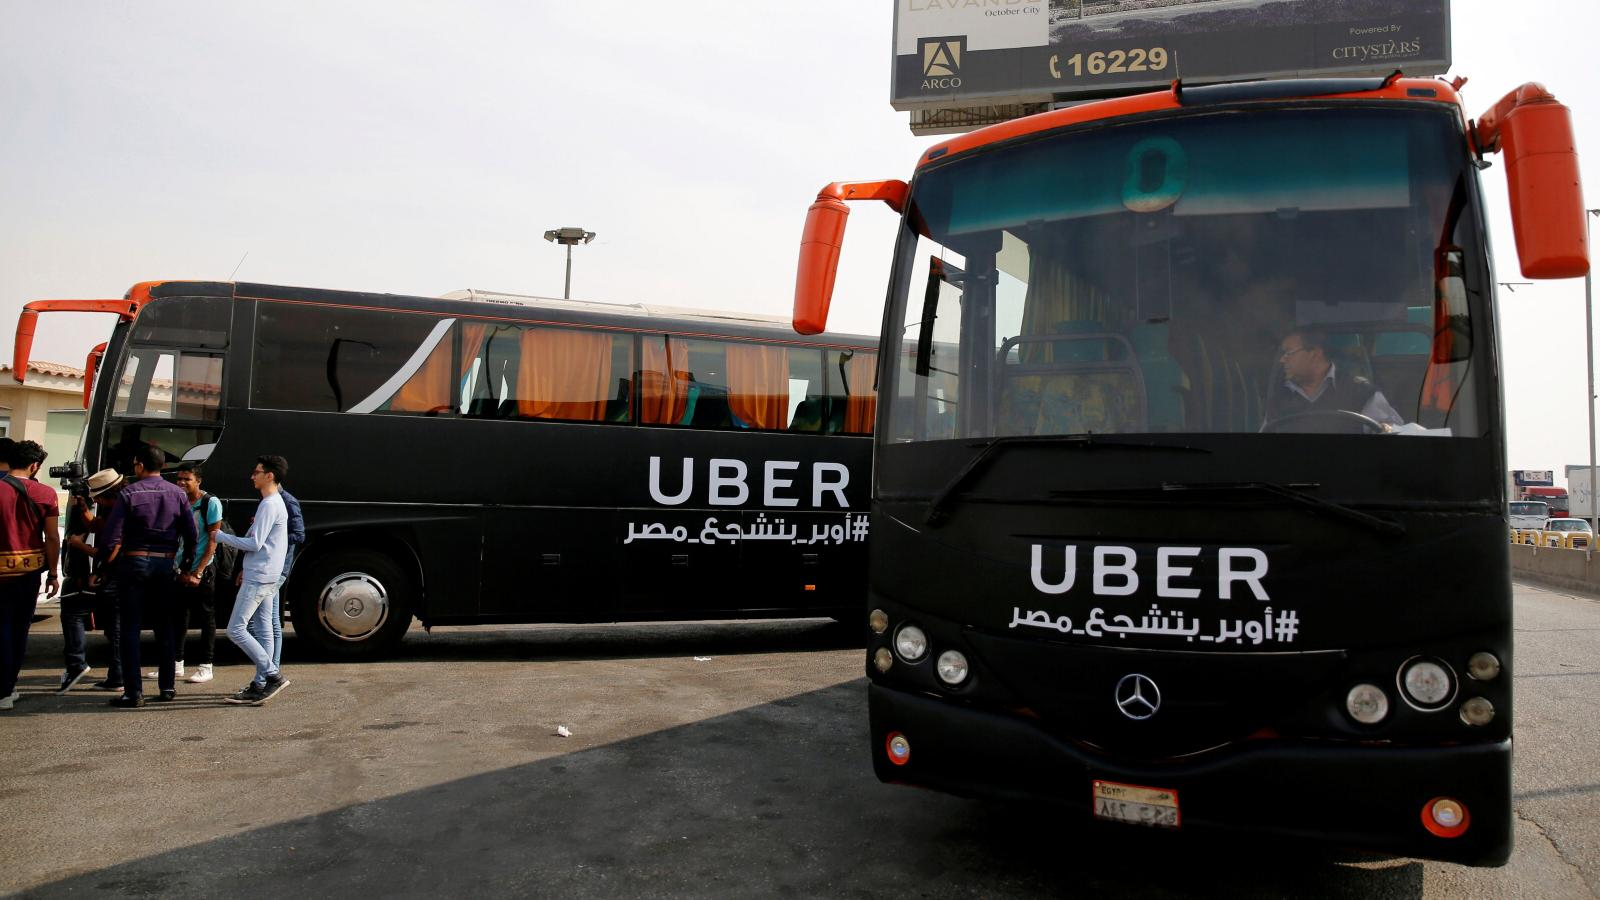 Uber in Africa: Cash payments are shaping global operations